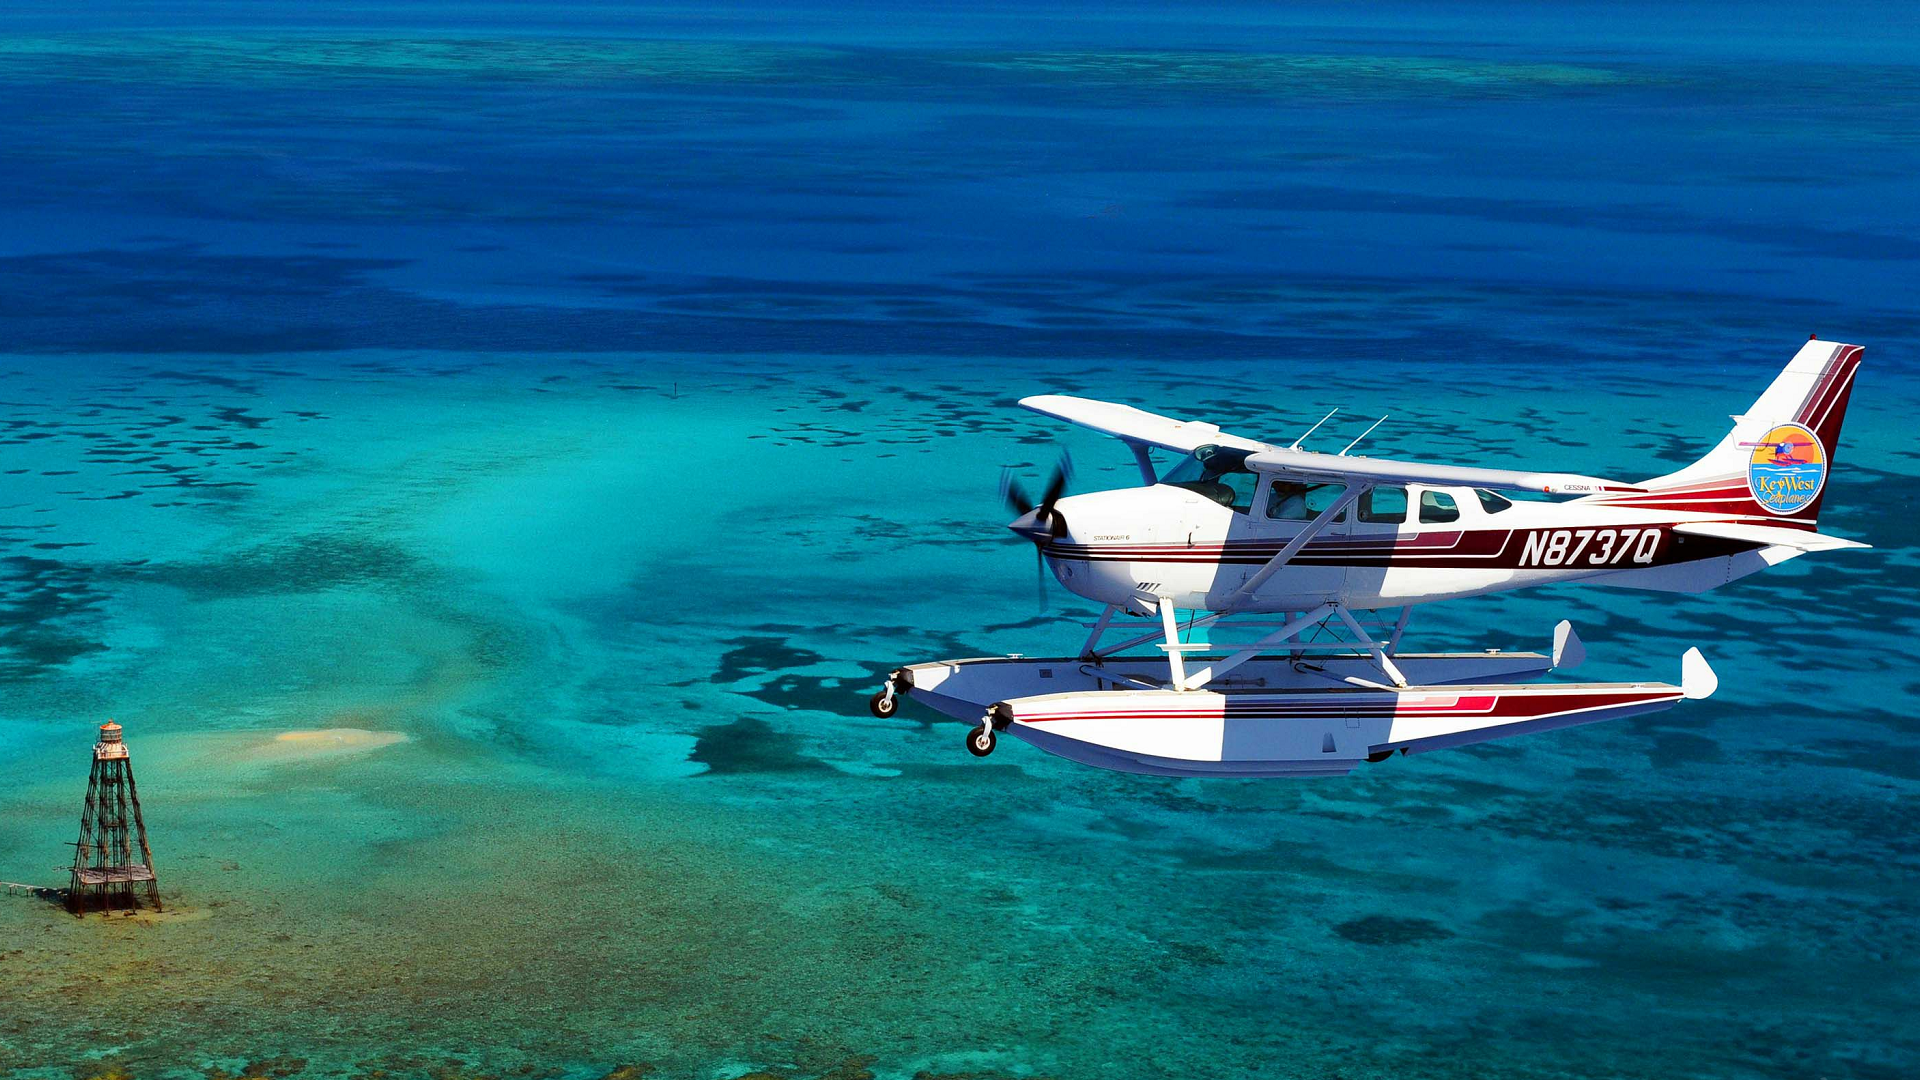 Cessna Wallpapers   Top Cessna Backgrounds   WallpaperAccess 1920x1080